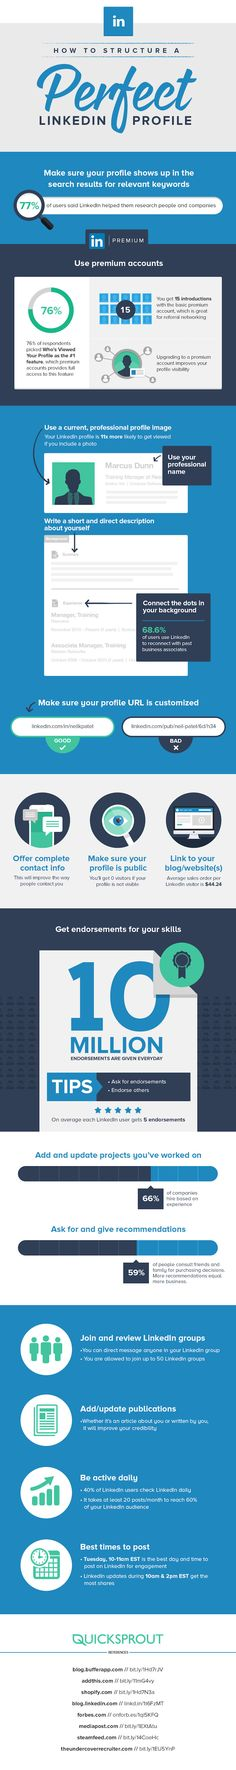 Have You Got the Perfect LinkedIn Profile? [INFOGRAPHIC]